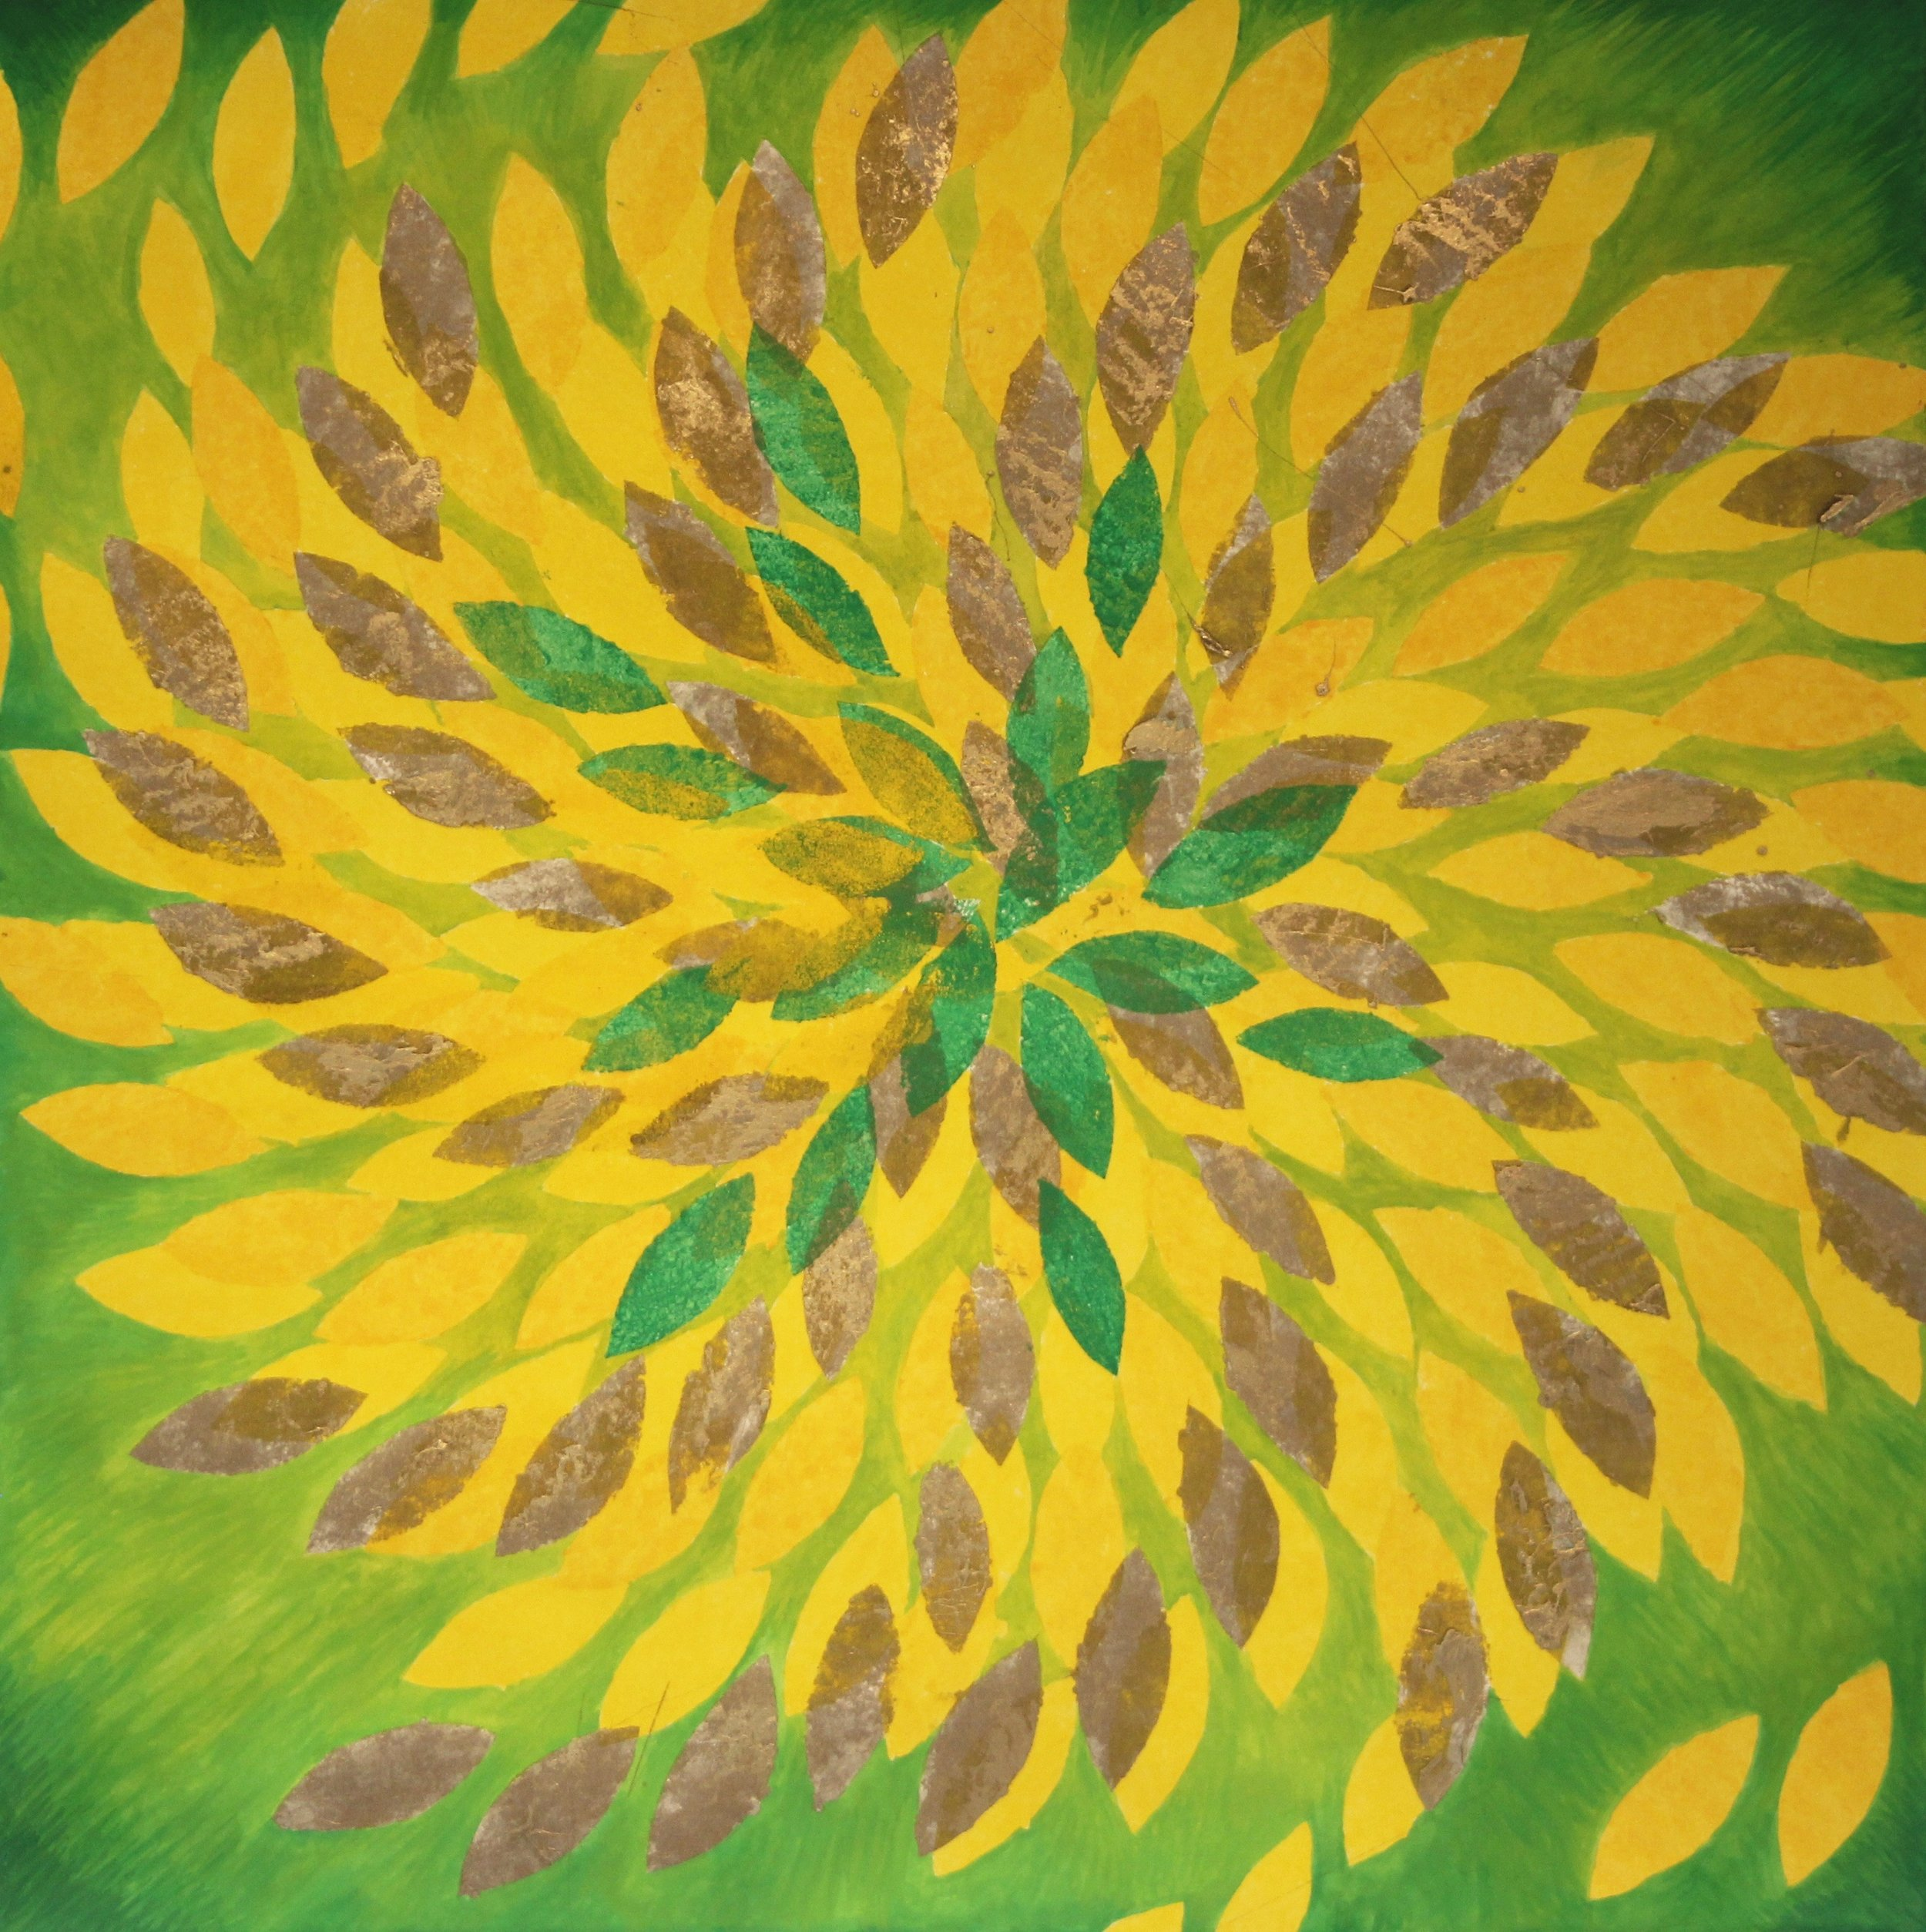 Sunflower 1, 2017, mixed media on paper, 22 x 22 in, $1,800